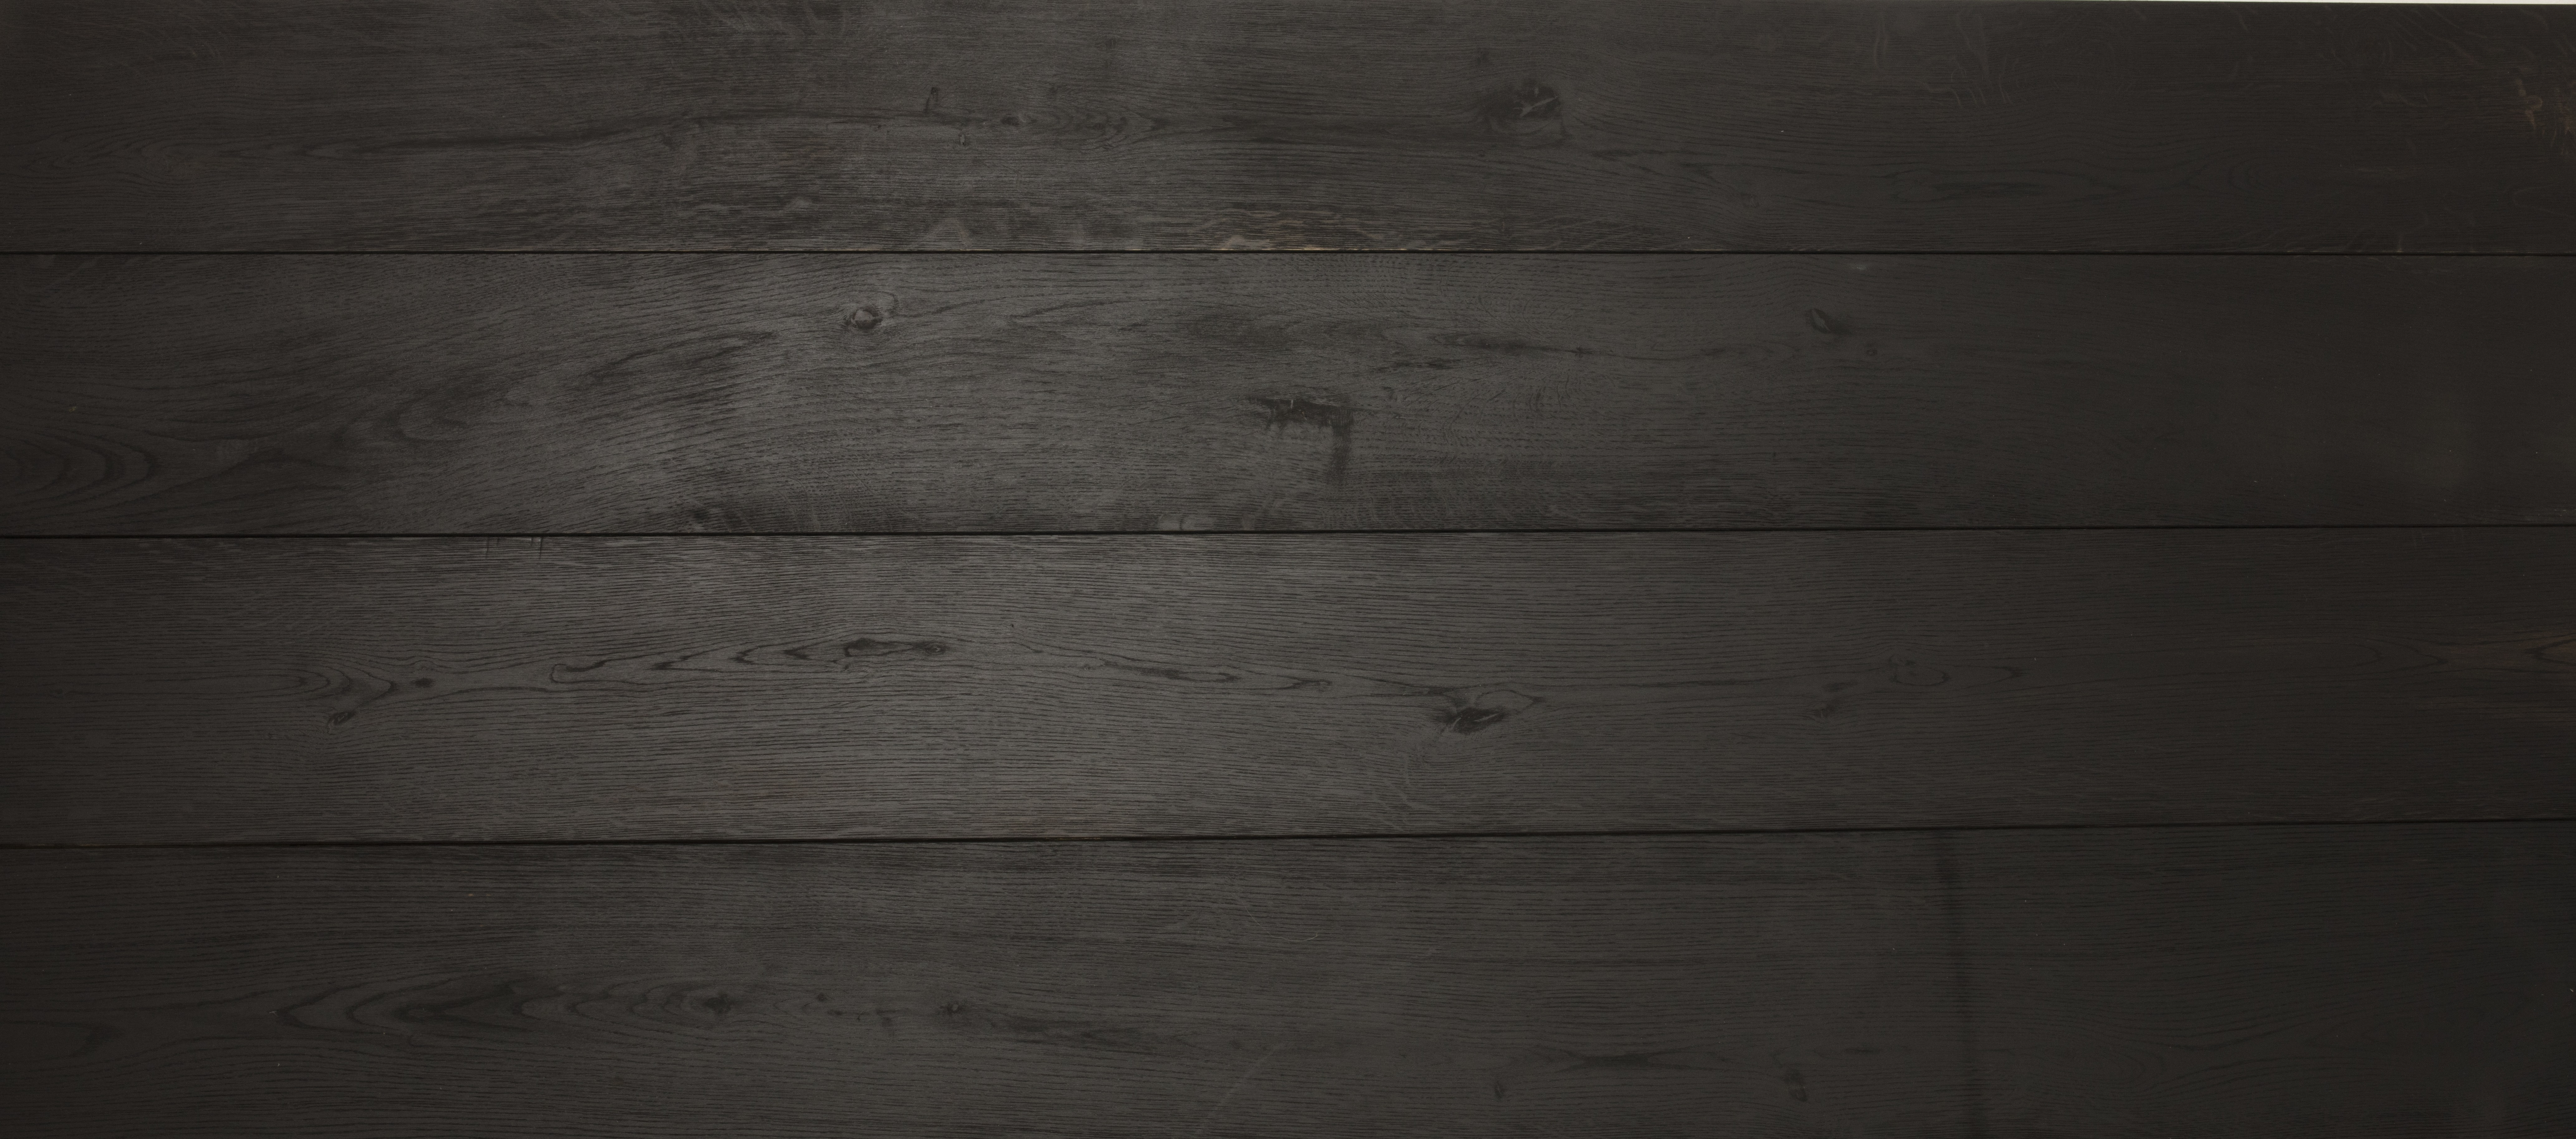 Top 10 Questions / FAQs to ask about Wood Flooring